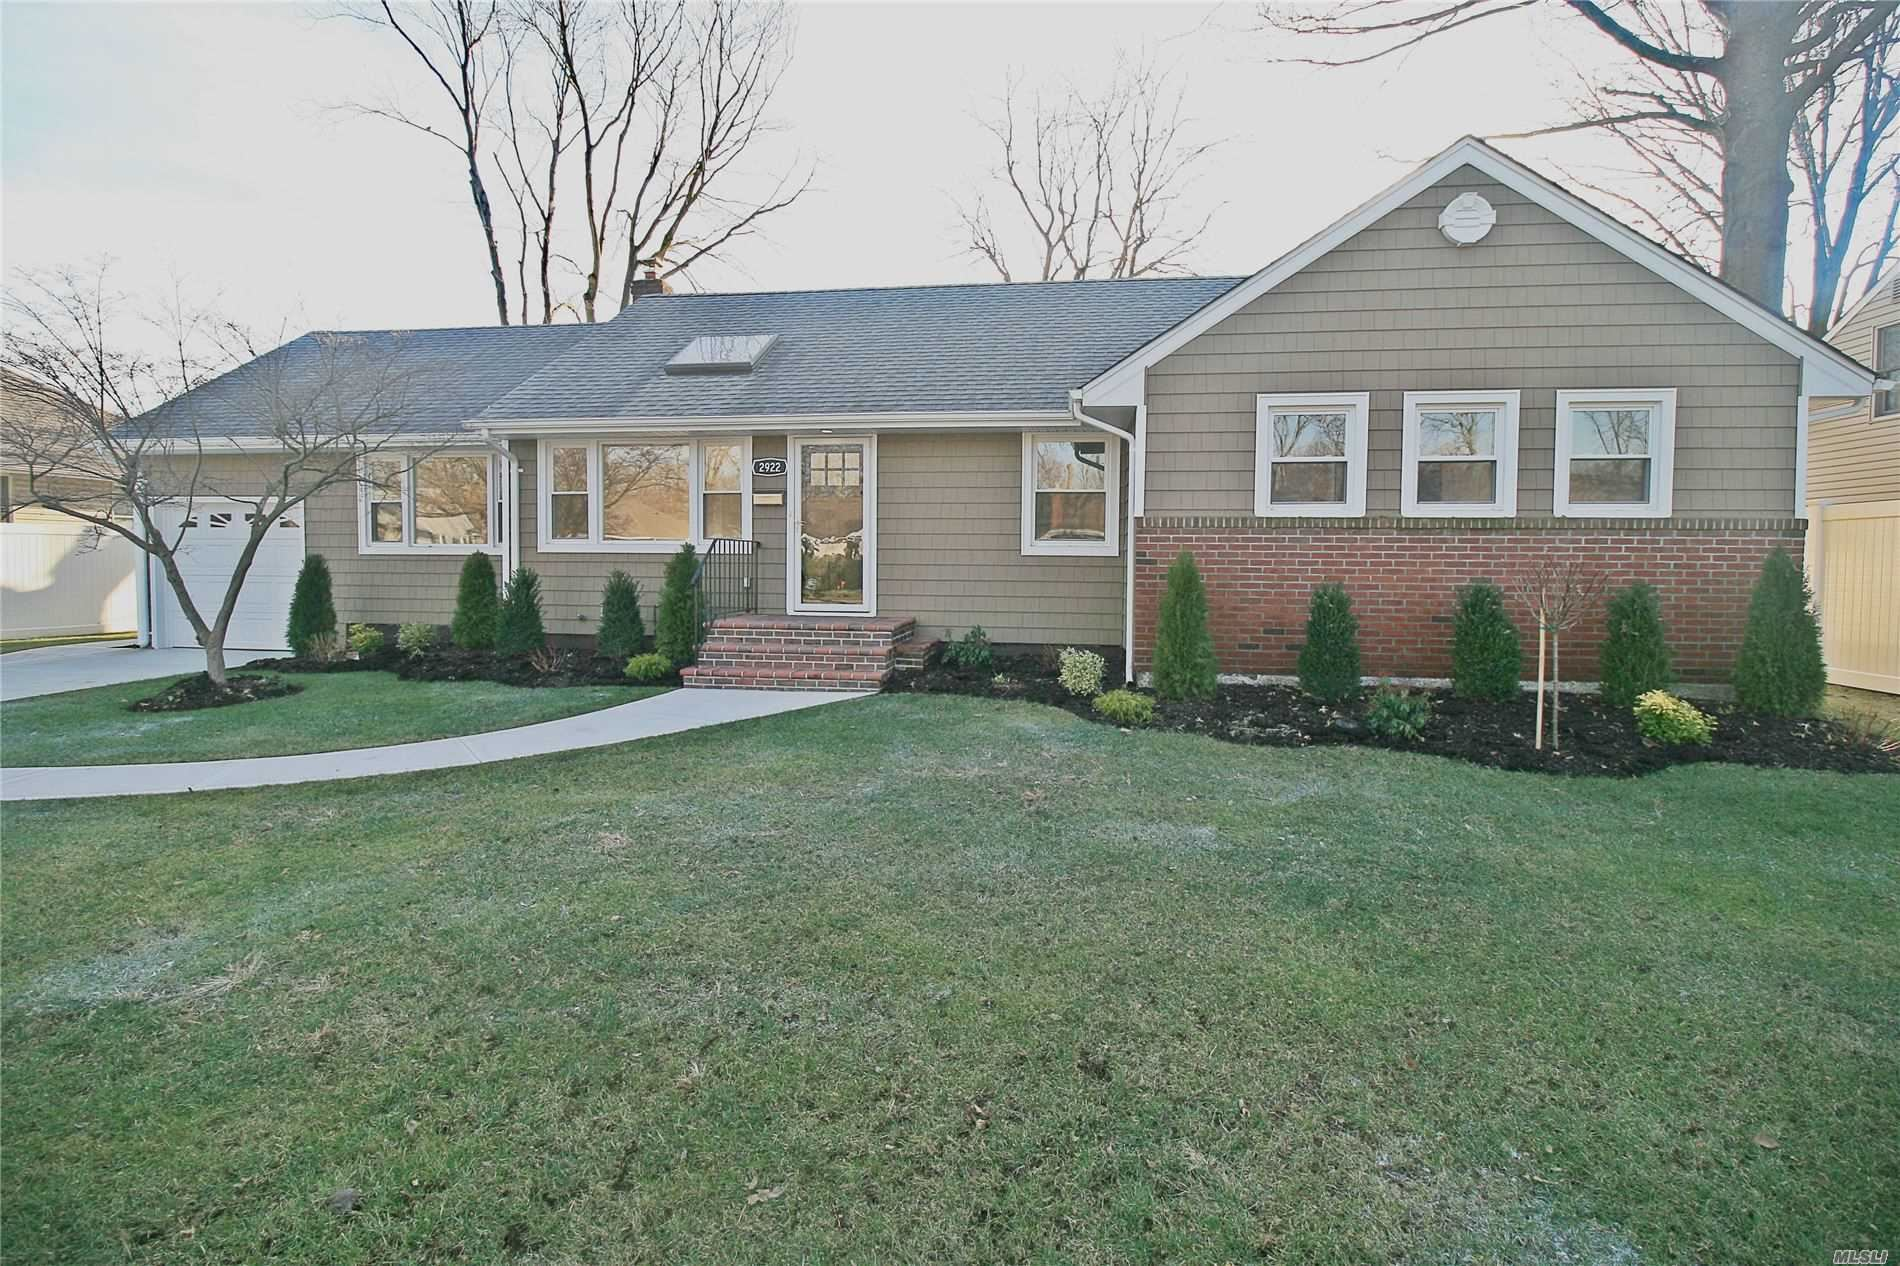 2922 Morgan Drive, Wantagh, NY 11793 - MLS#: 3188345